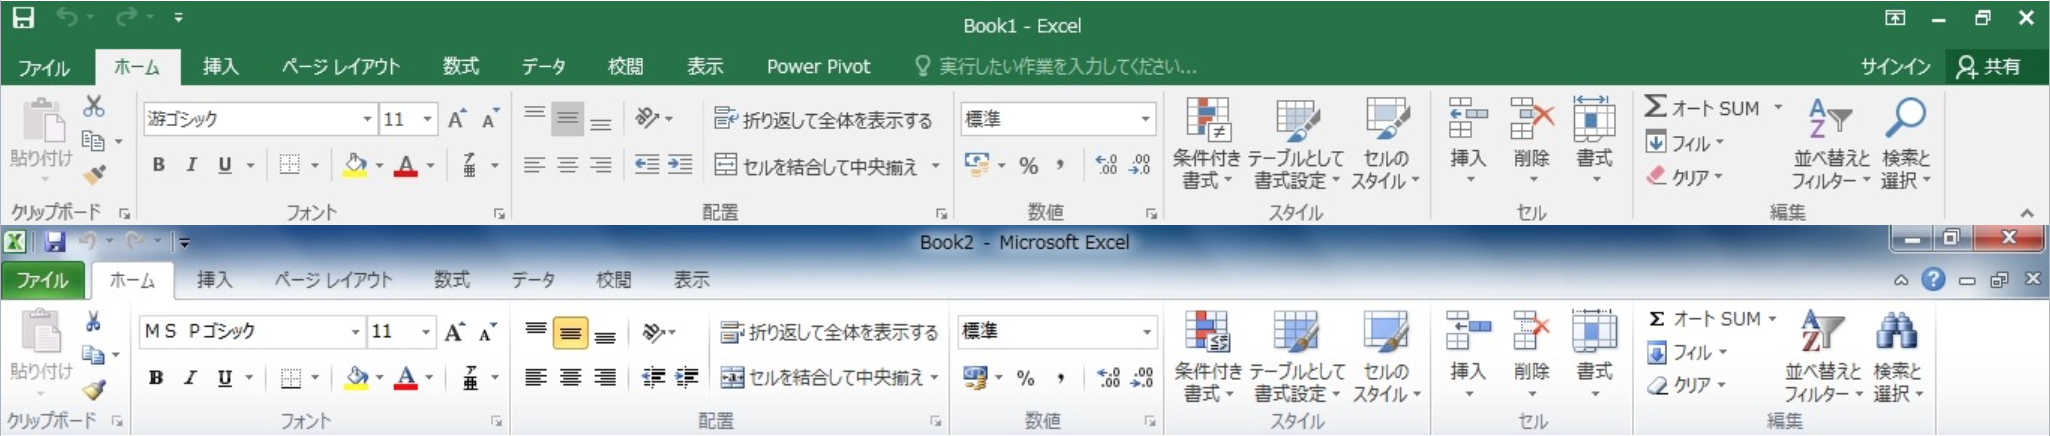 Excel2016とExcel2010のホームタブ